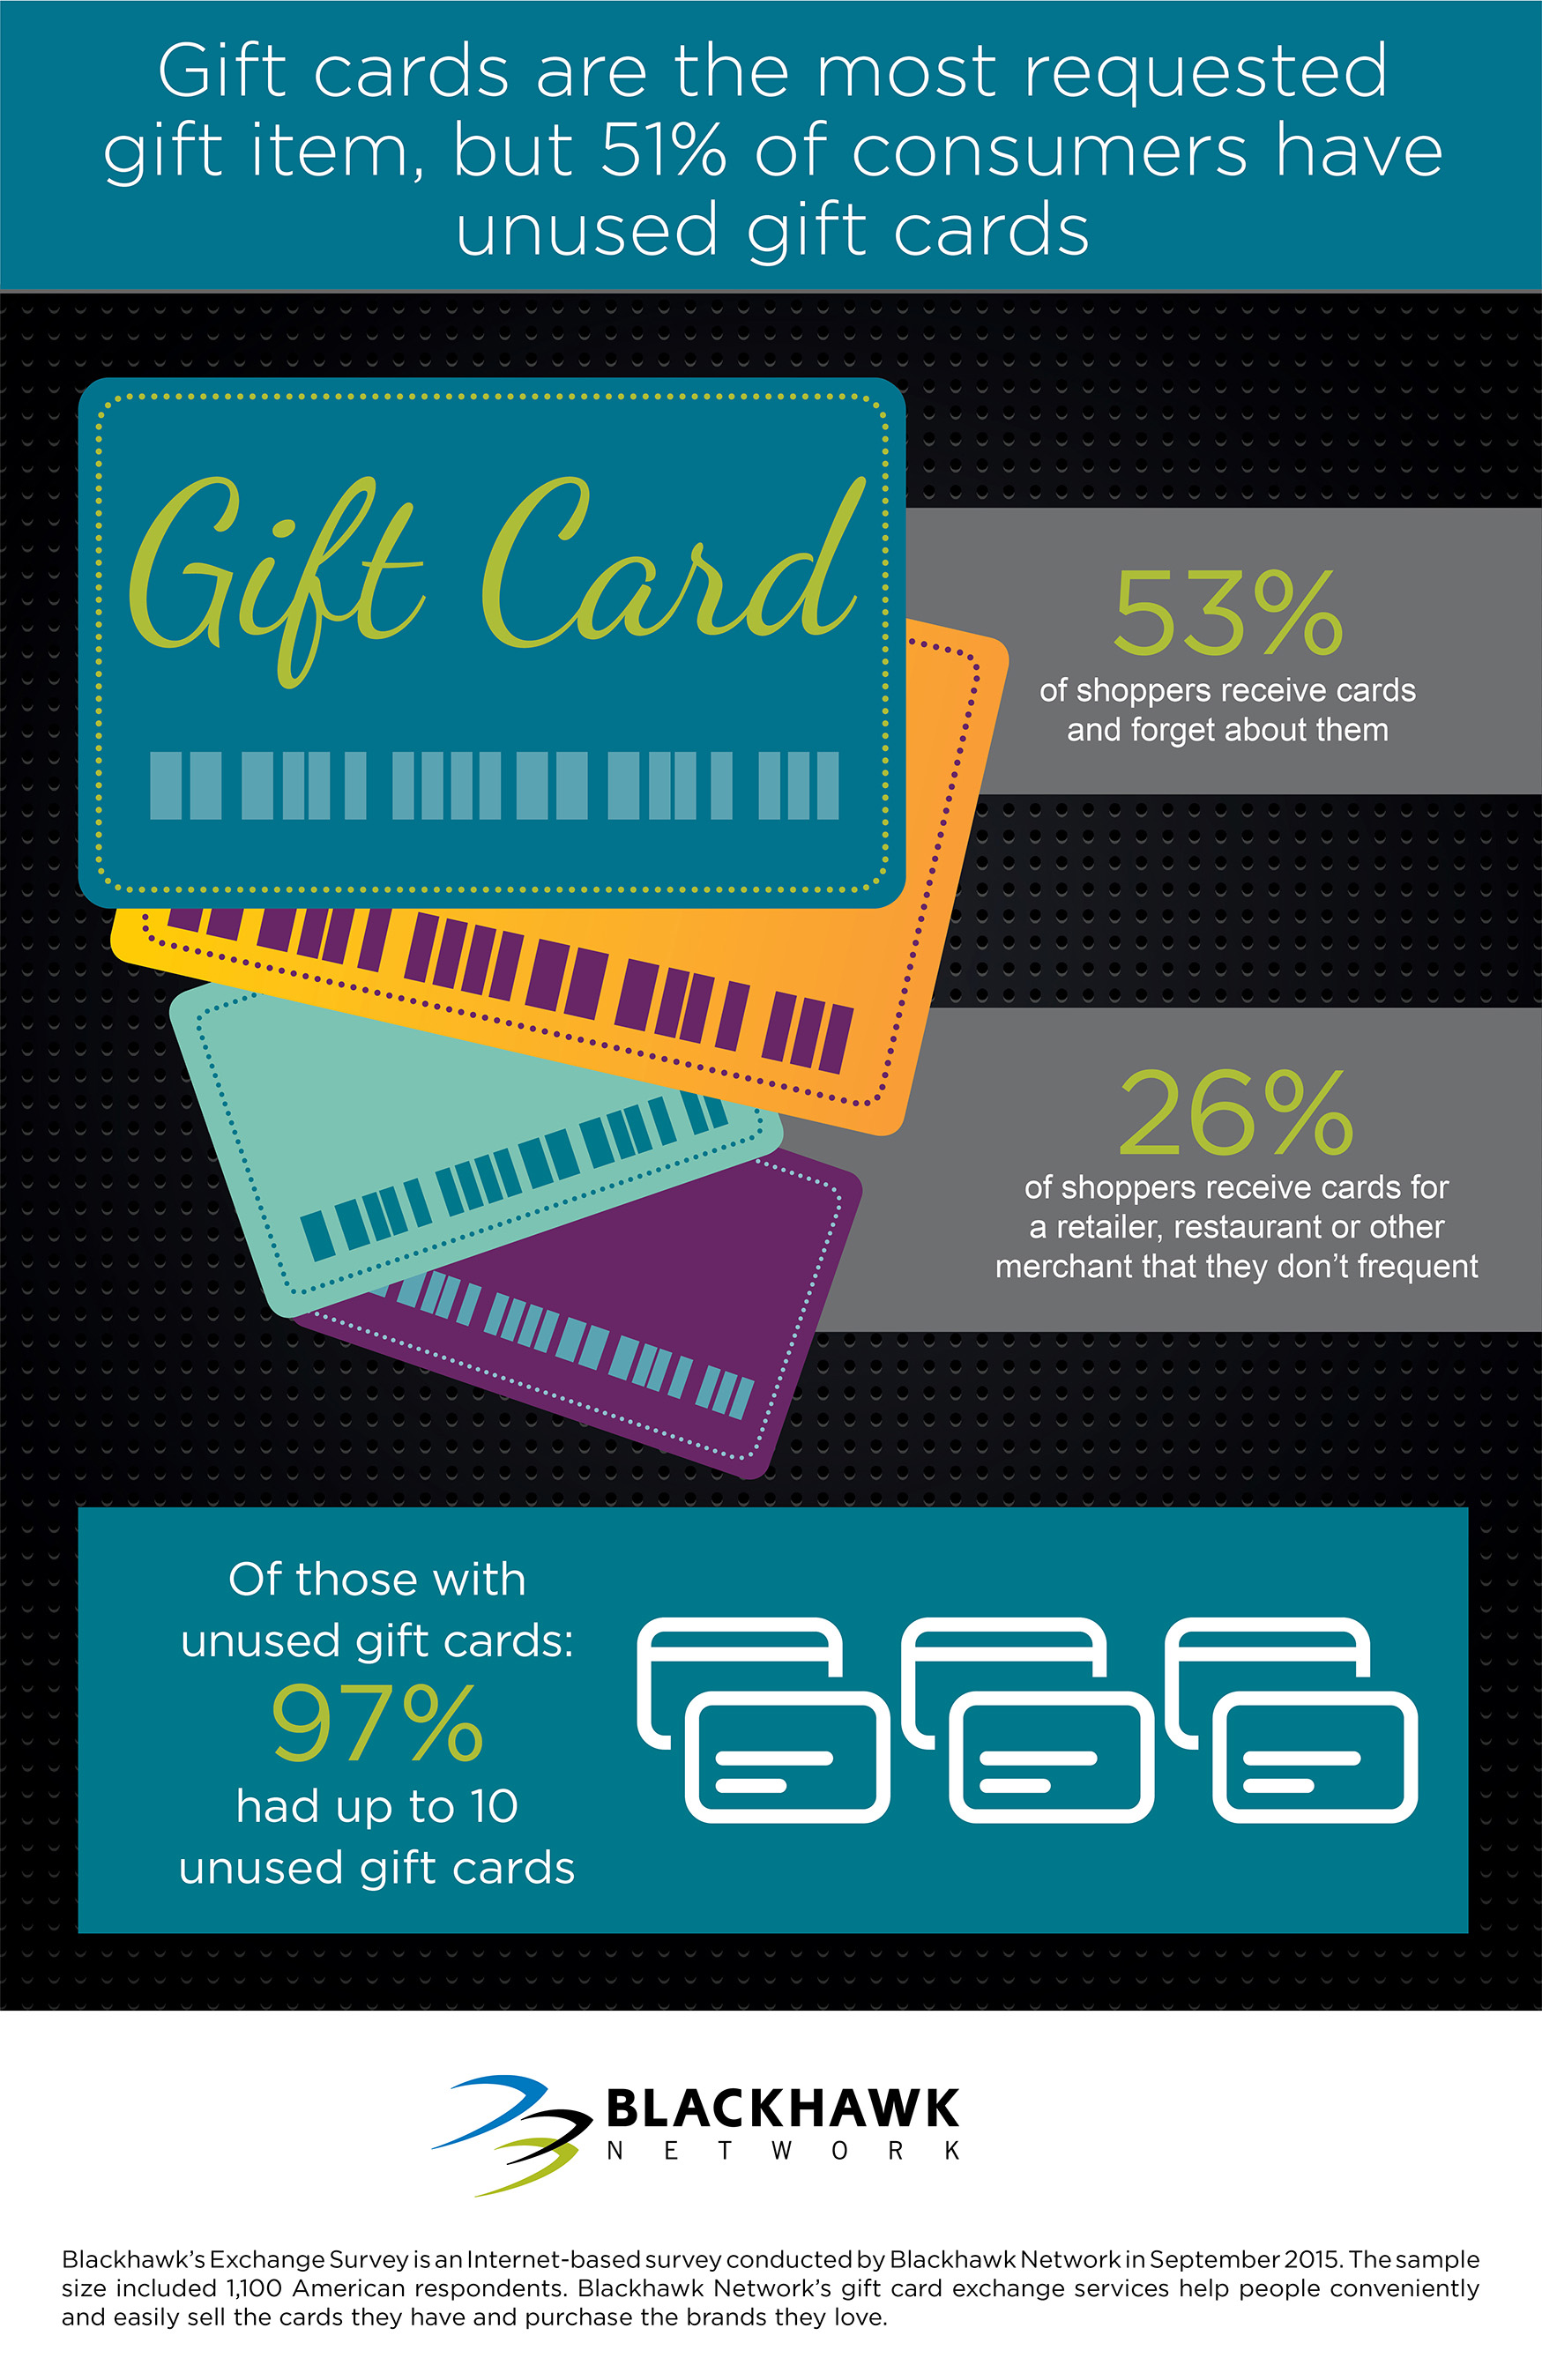 Gift cards are the most requested gift item, but 51% of consumers have unused gift cards